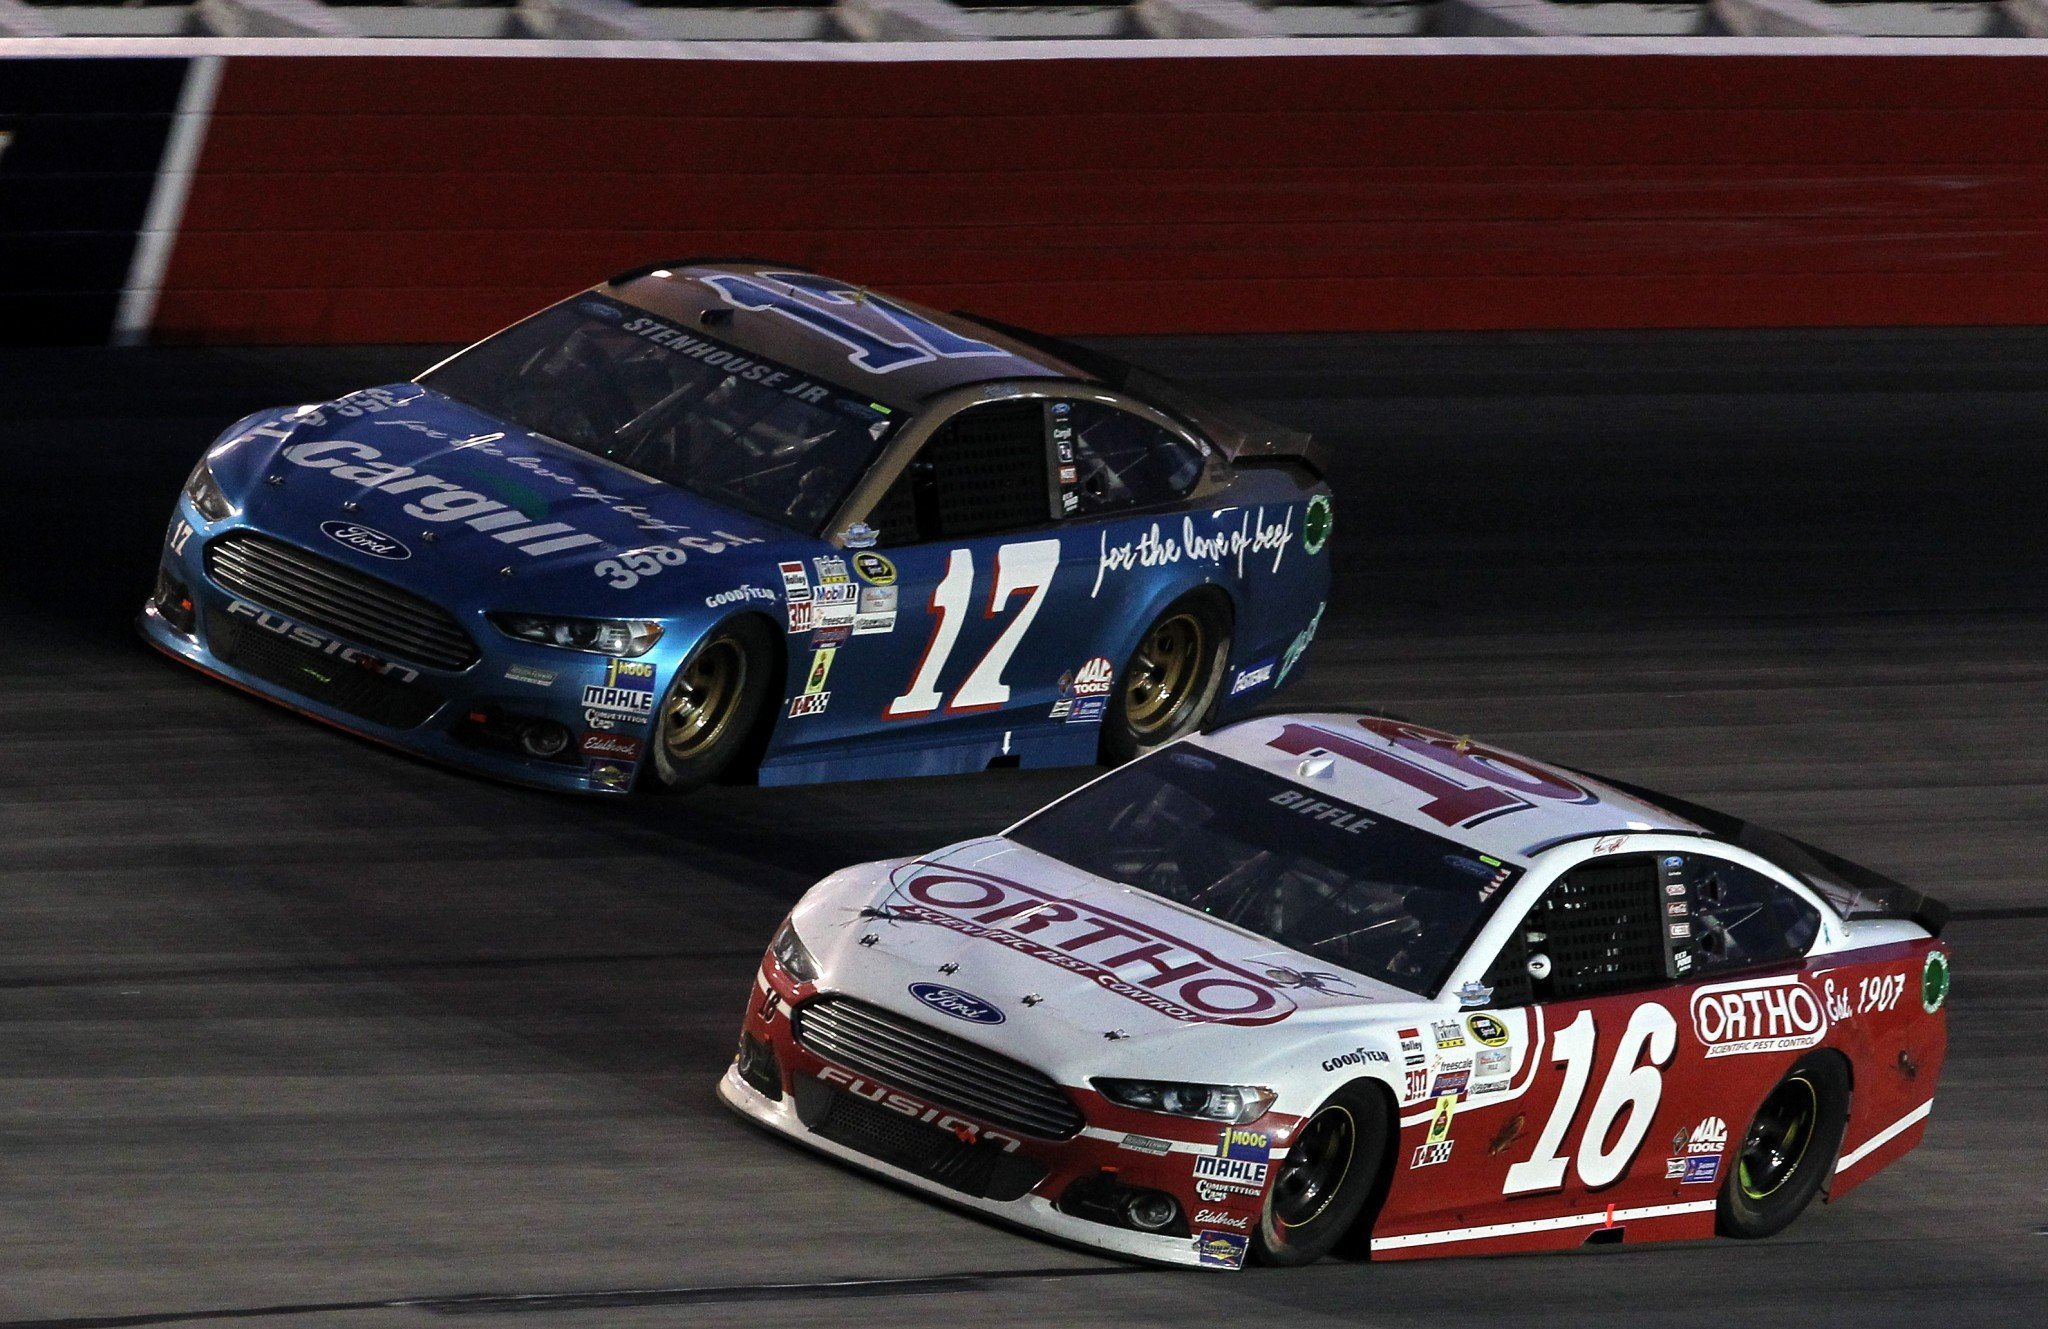 Ricky Stenhouse Jr. (L) led the way for Roush with a 21st-place finish in the 2016 points standings. (Getty)